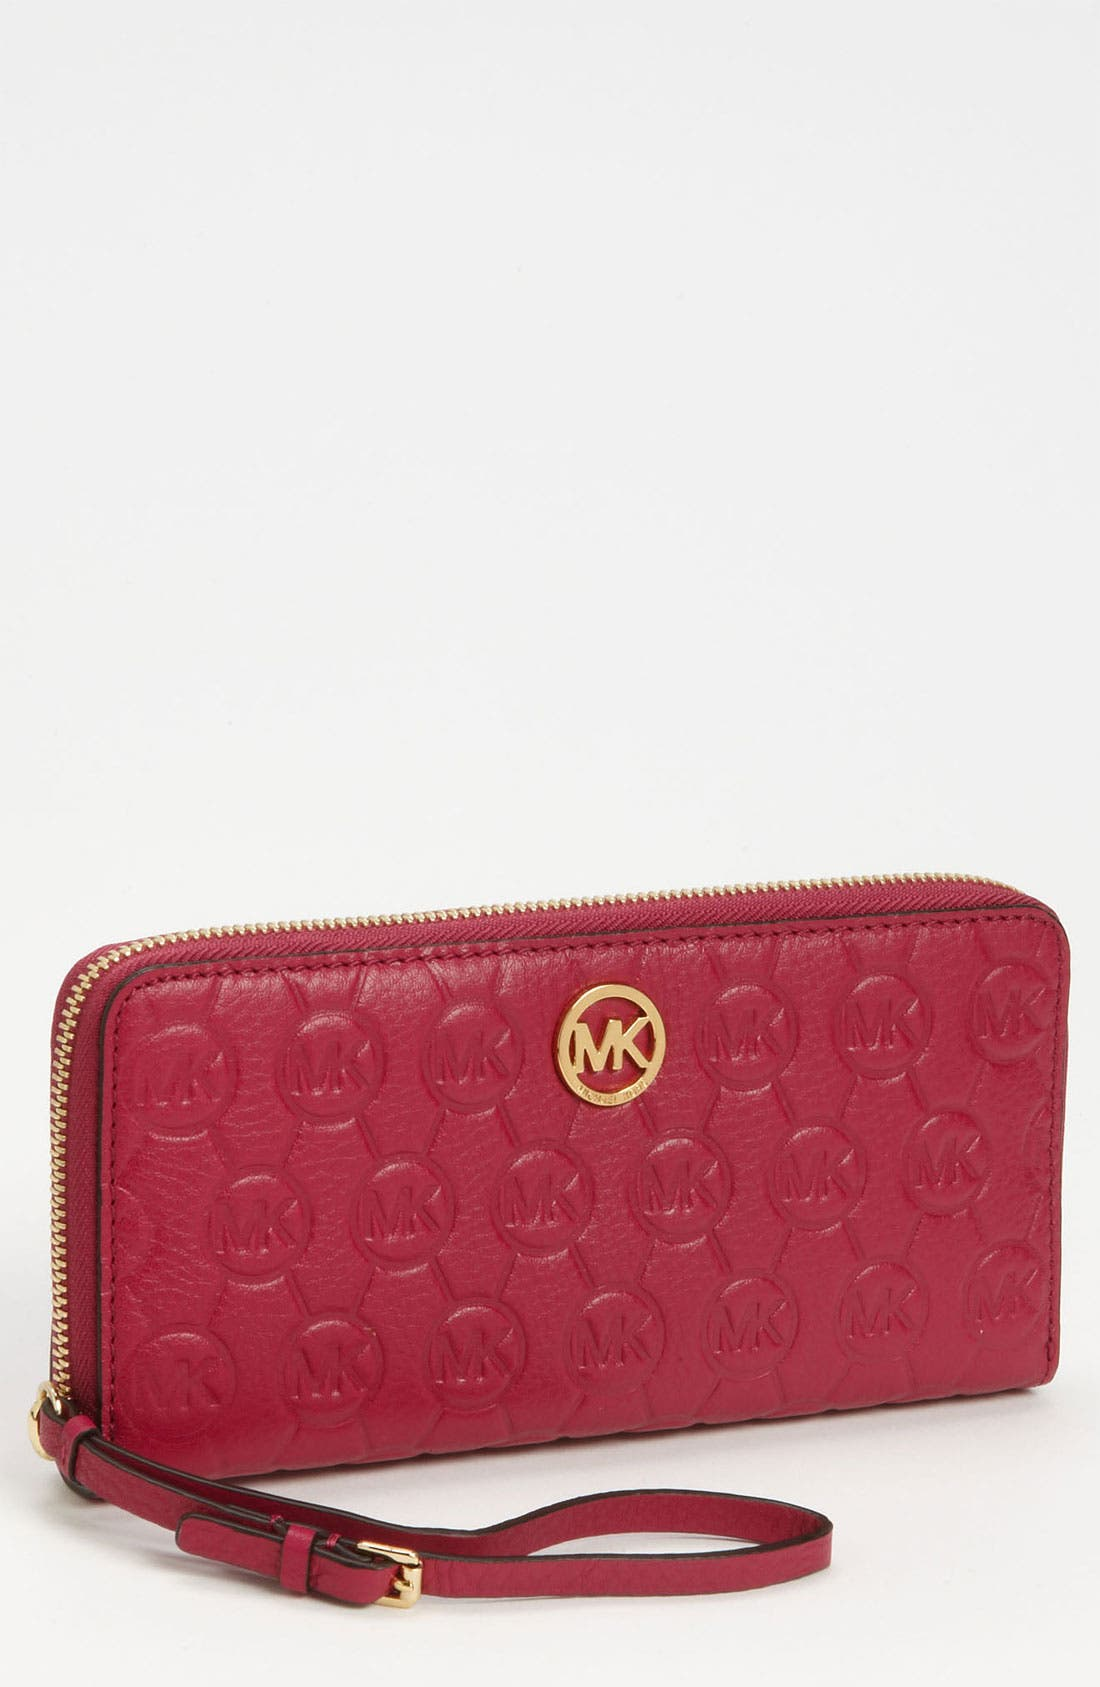 Main Image - MICHAEL Michael Kors Monogram Embossed Leather Wallet